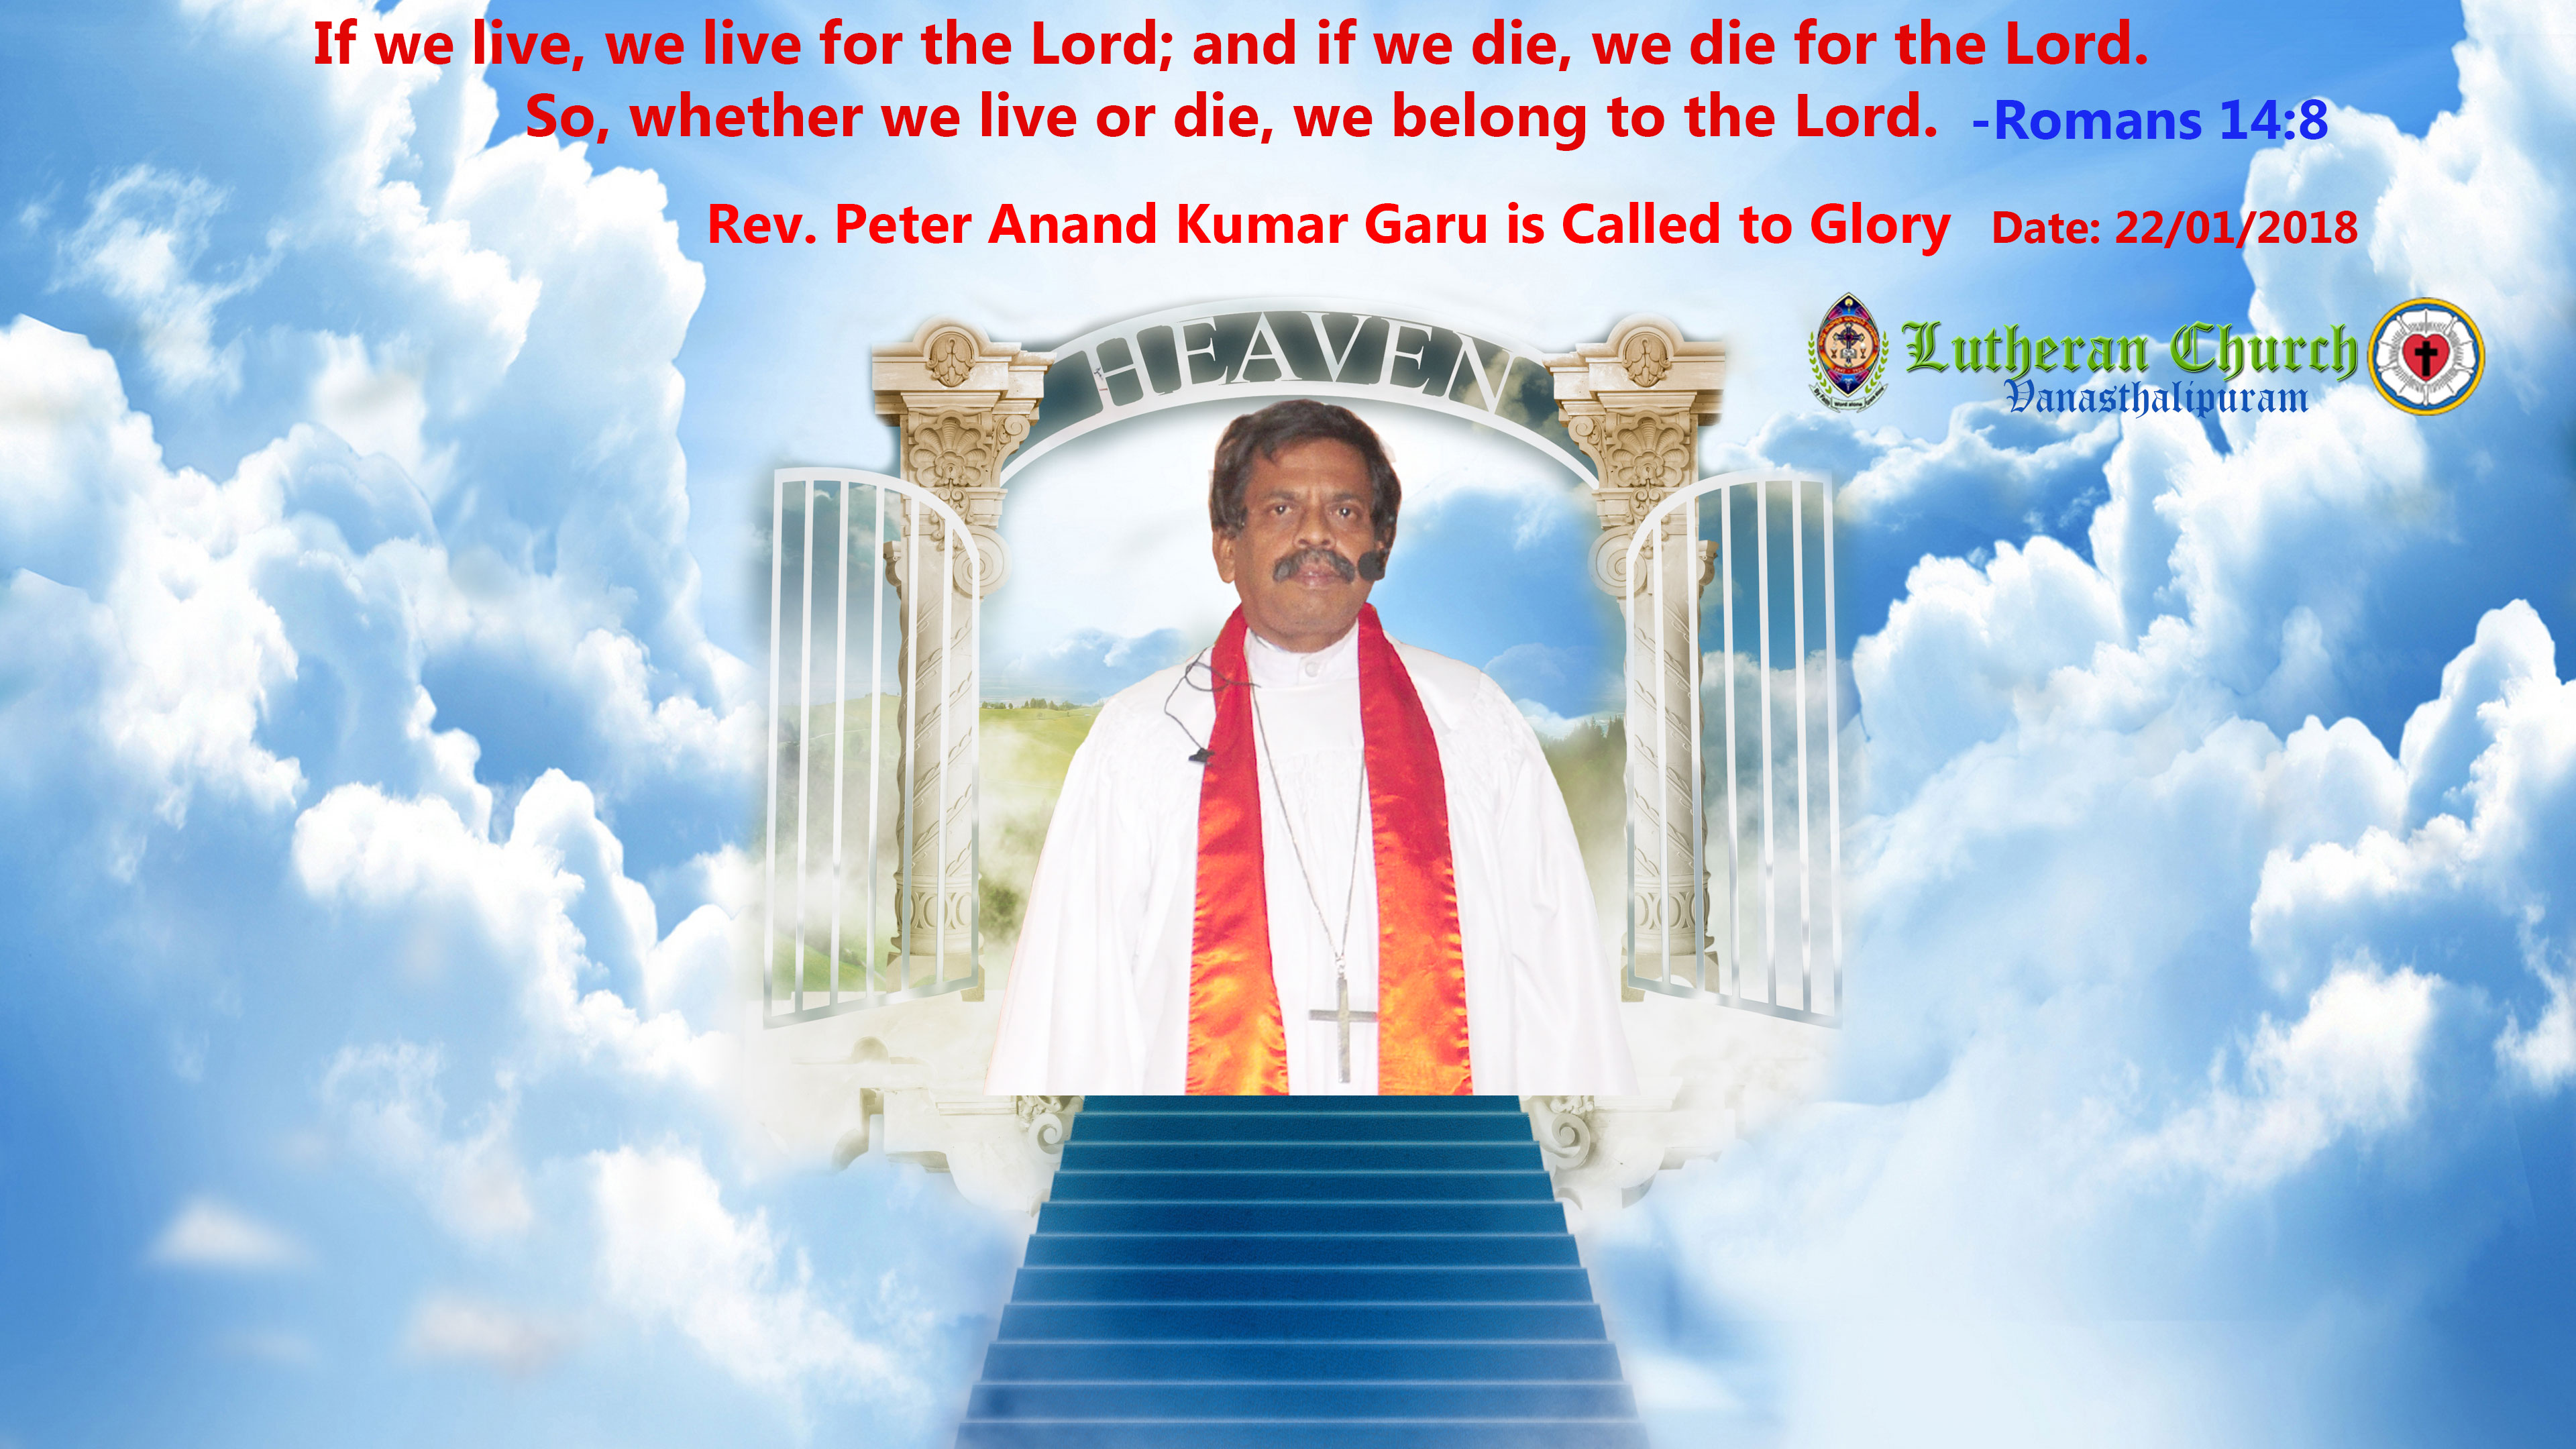 Rev. Peter Anand Kumar Garu is Called to Glory